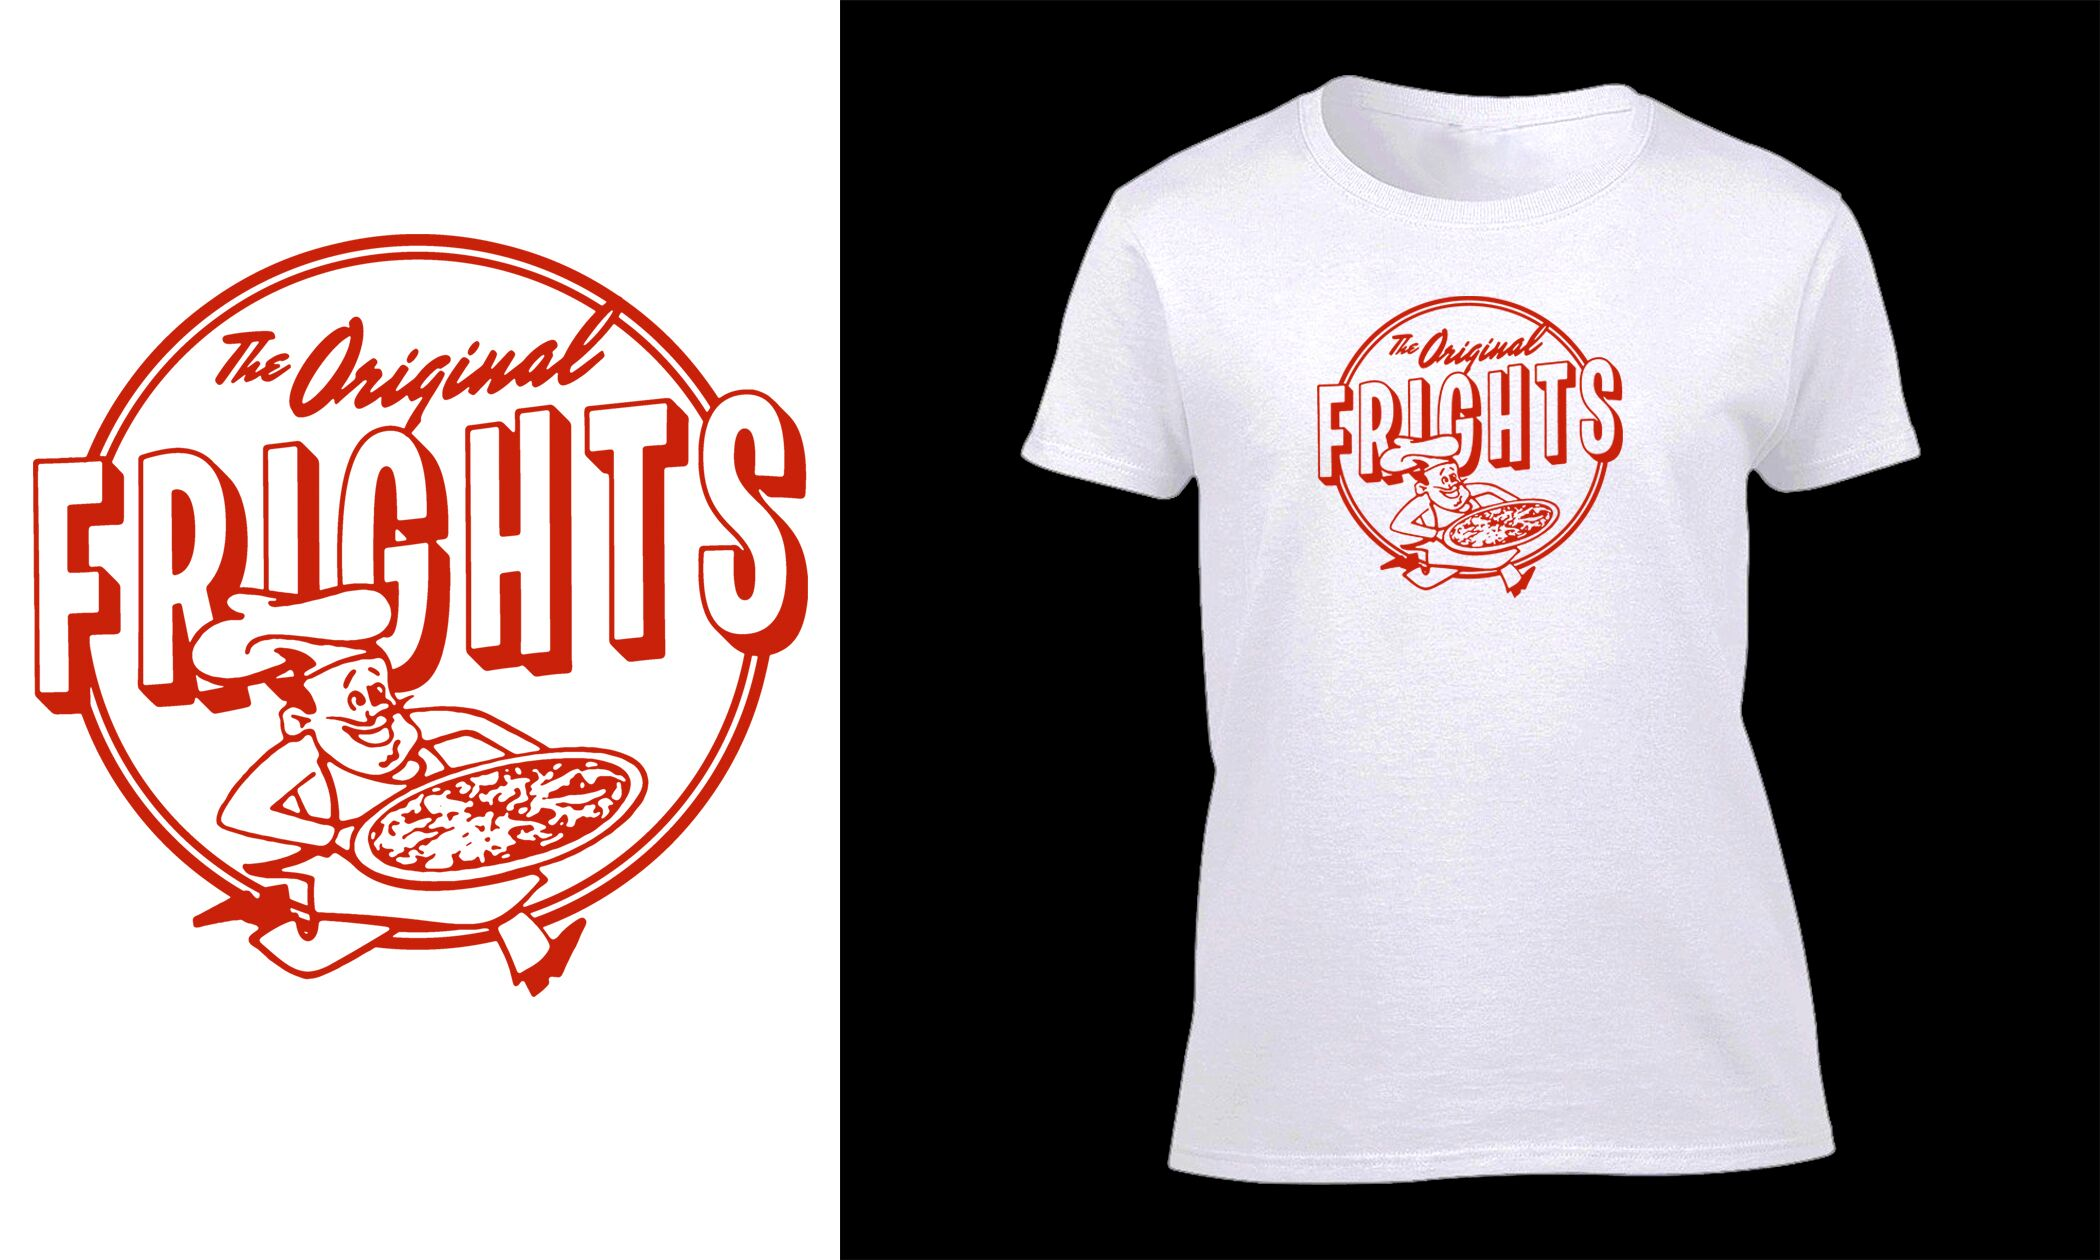 The Frights - The Original Frights White Girls T-Shirt